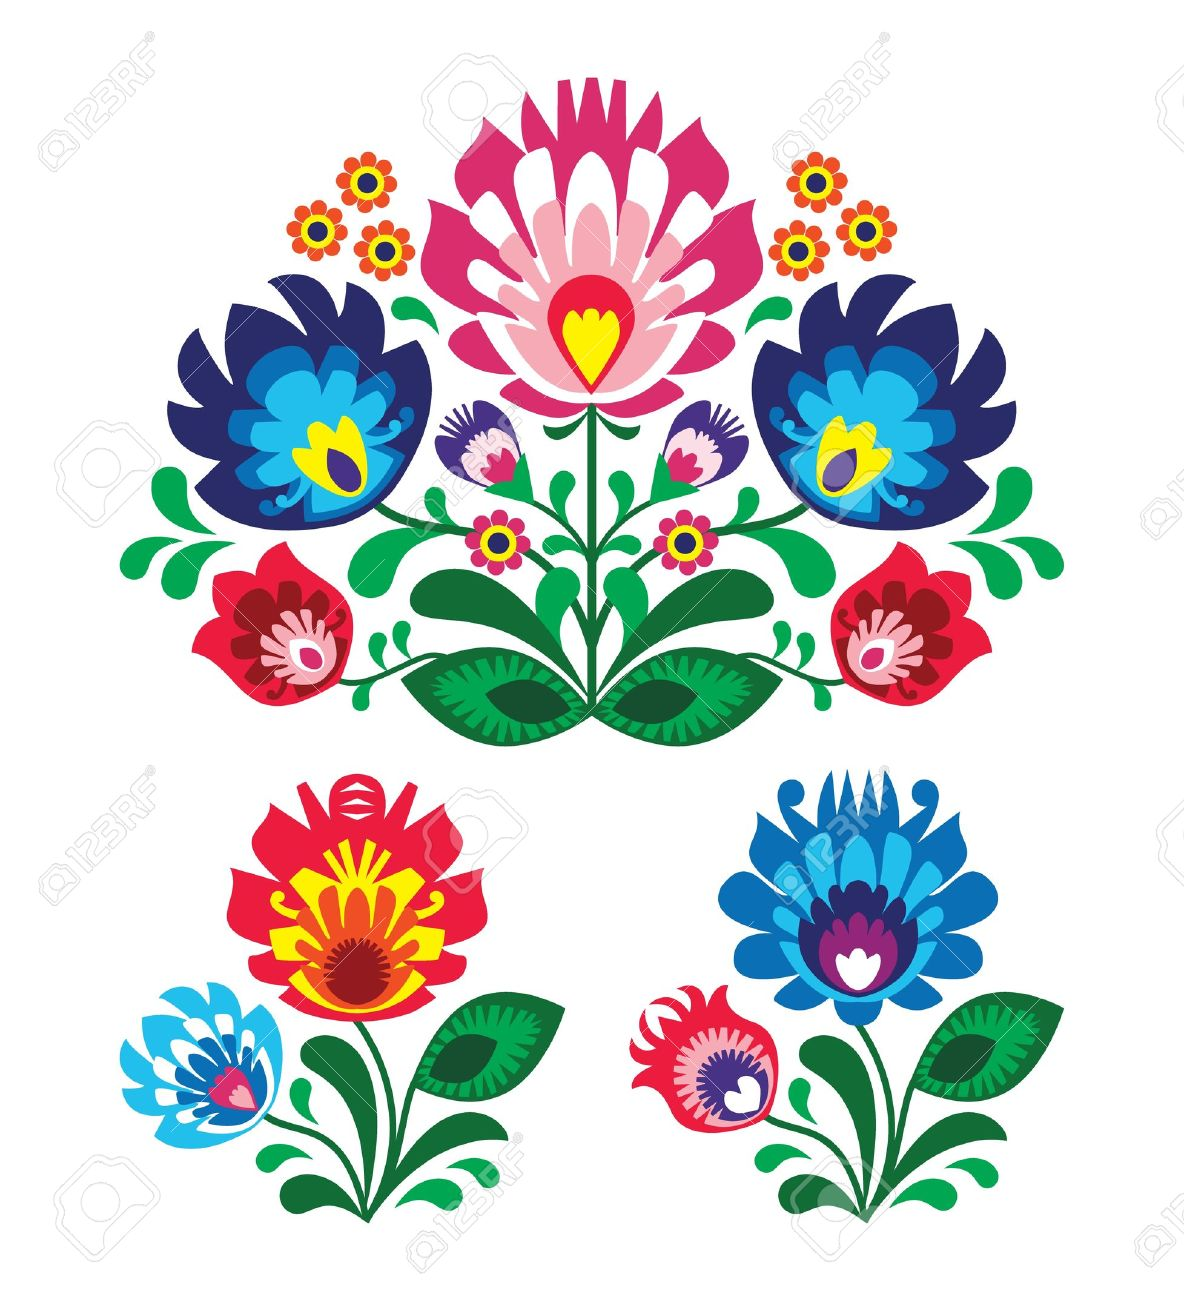 Poland clipart mexican embroidery #14